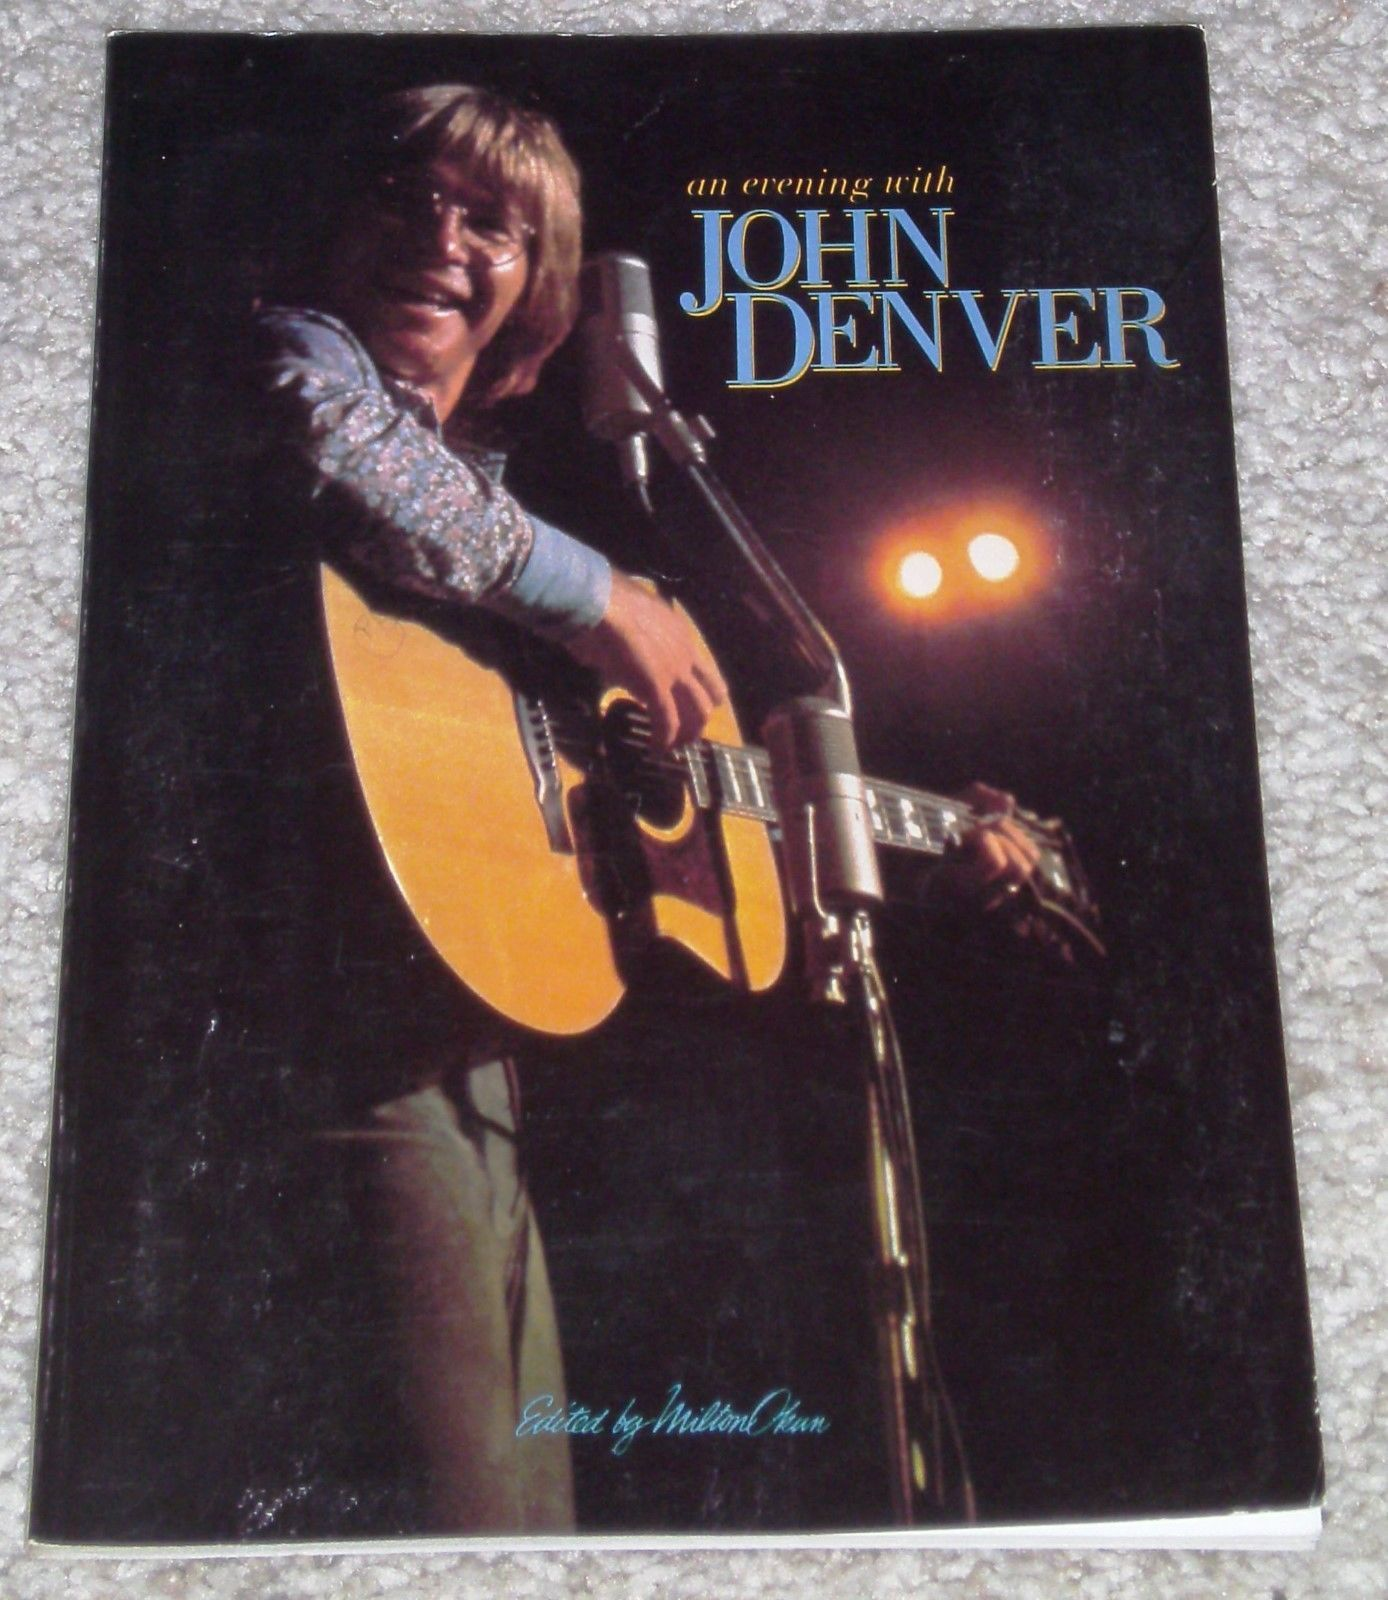 John denver grandma s feather bed sheet music - Details About Songbook John Denver Greatest Hits An Evening With Vocal Guitar 23 Songs 1975